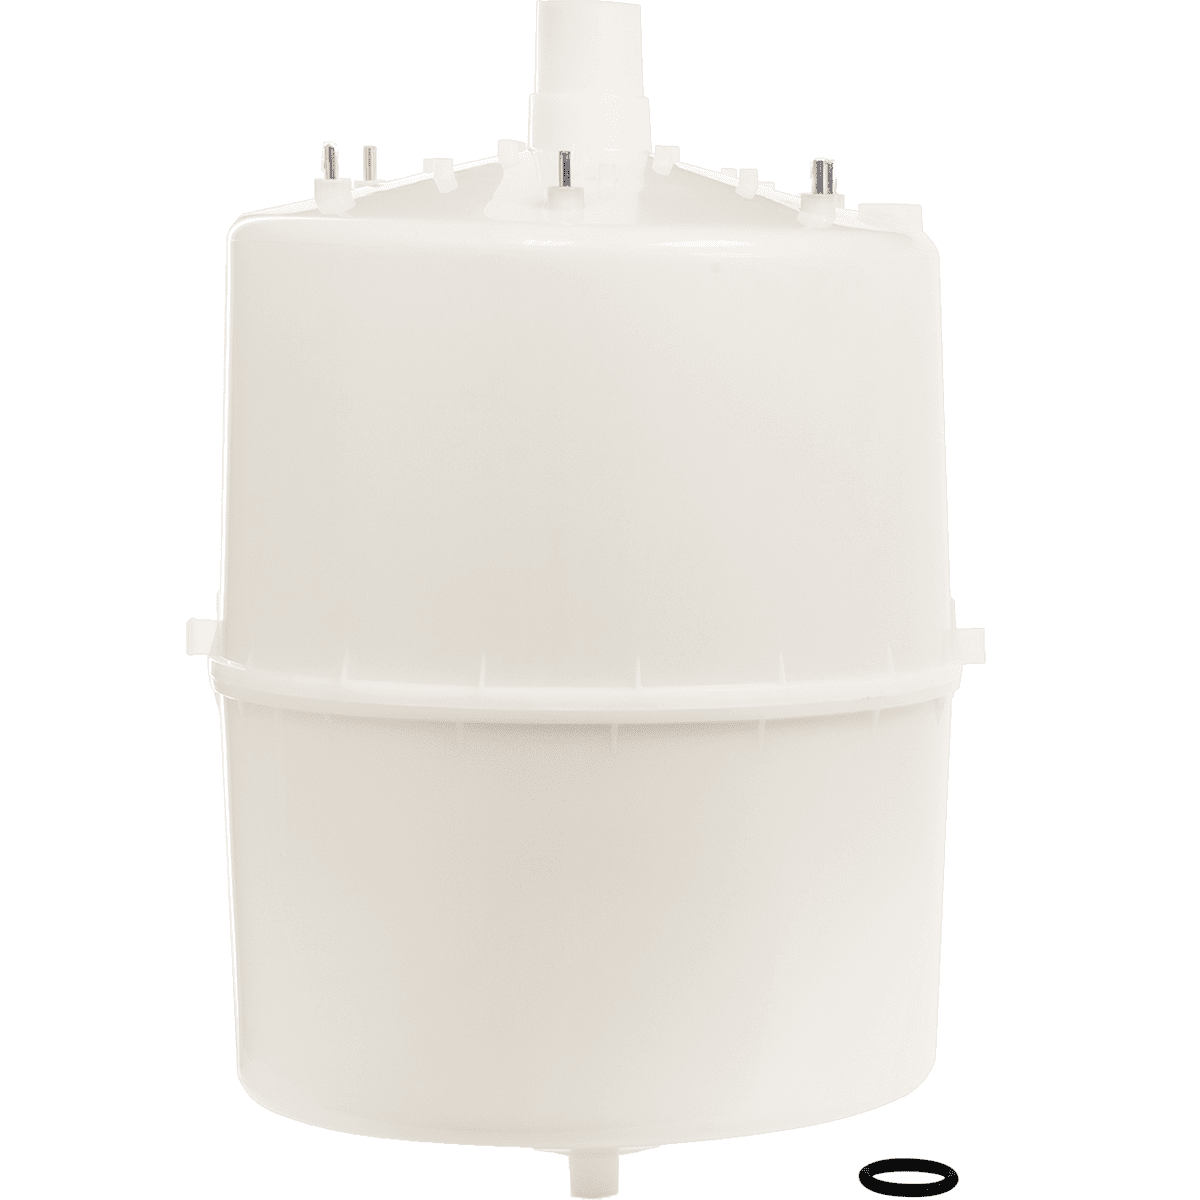 Image of Aprilaire 607a Steam Humidifier Cylinder (equivalent To Nortec